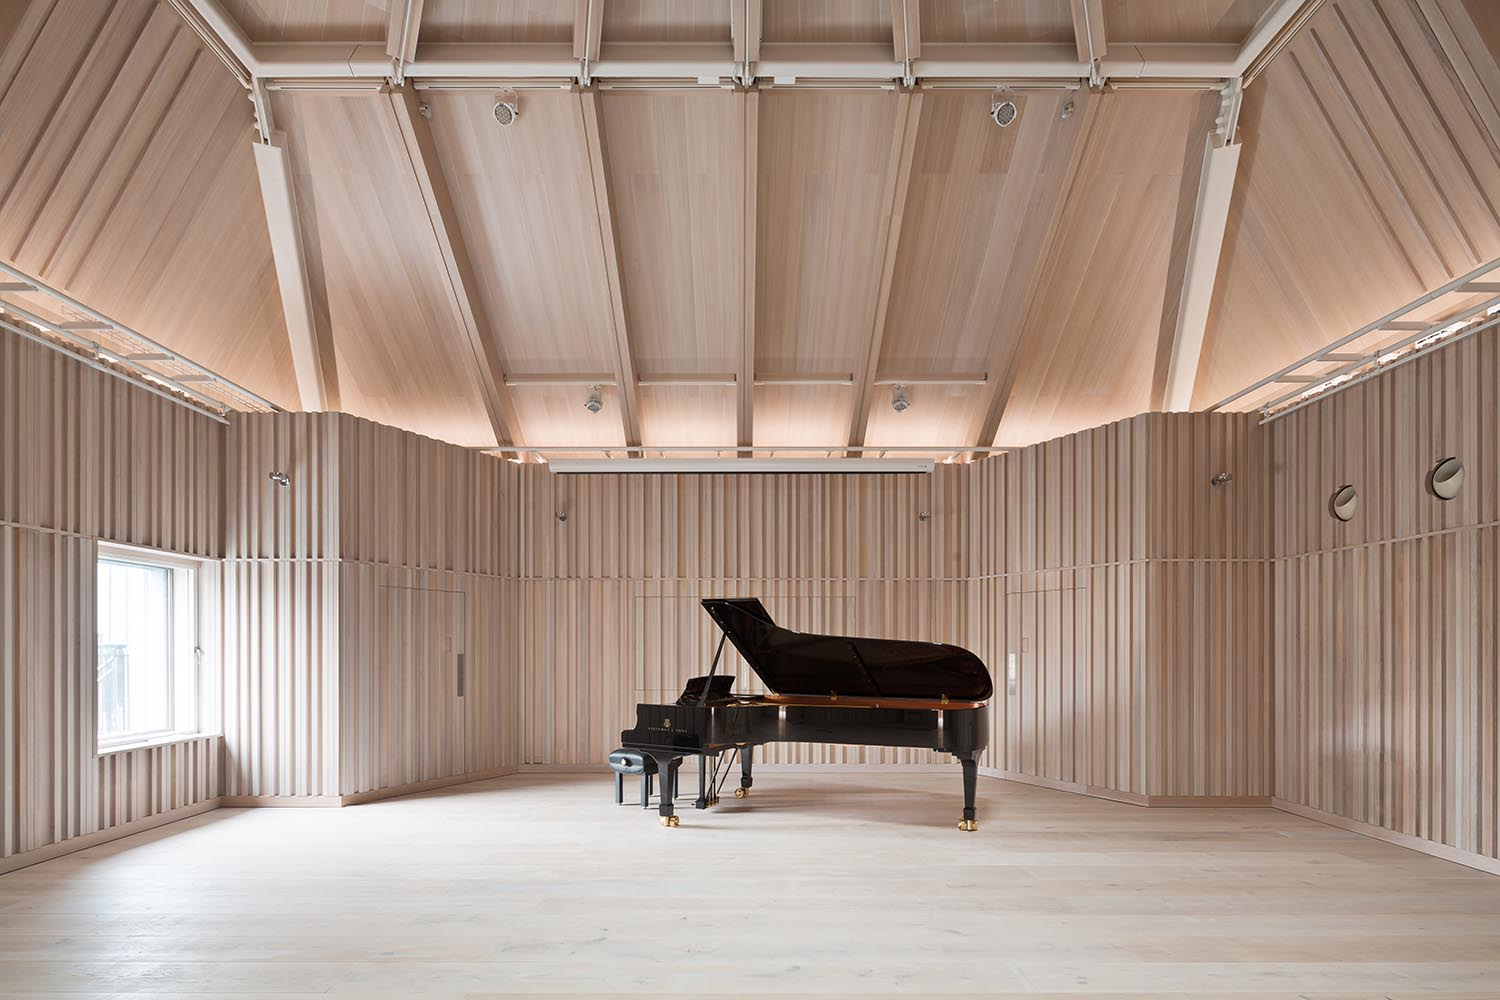 Angela Burgess Recital Hall - Rehearsal Mode with natural light from window in west elevation Adam Scott